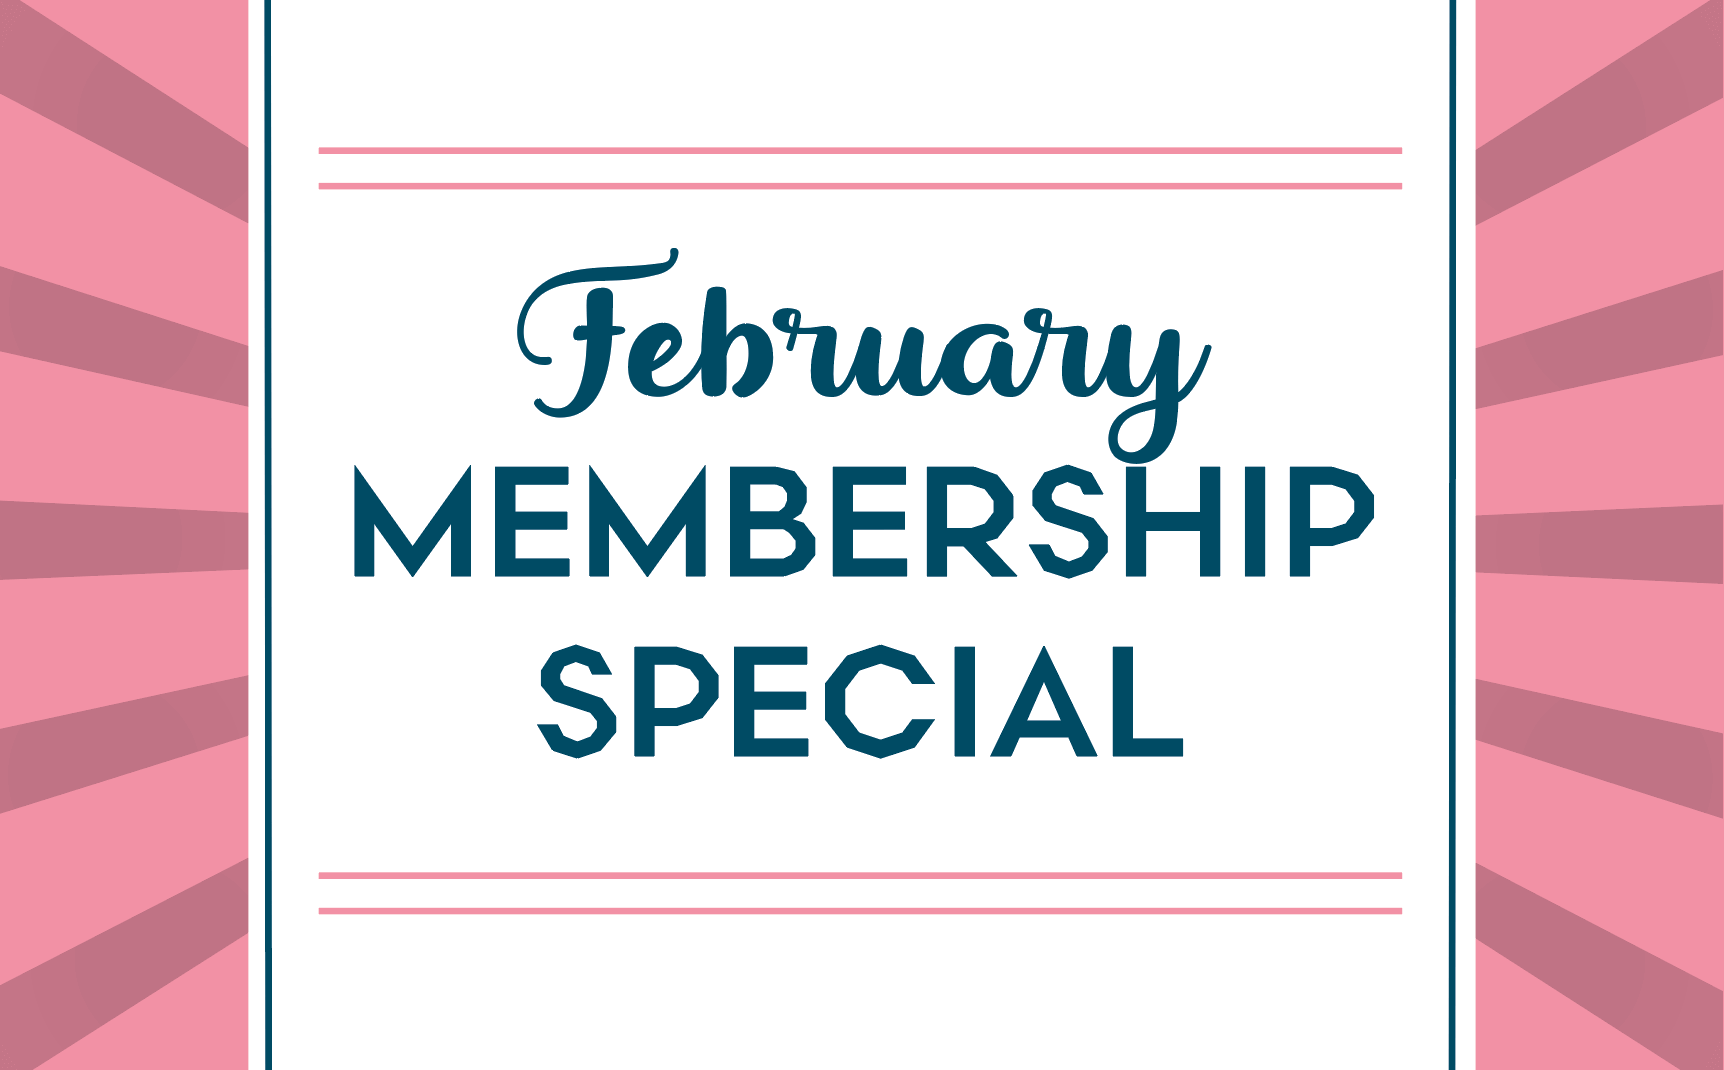 You're Going to LOVE this Membership Deal